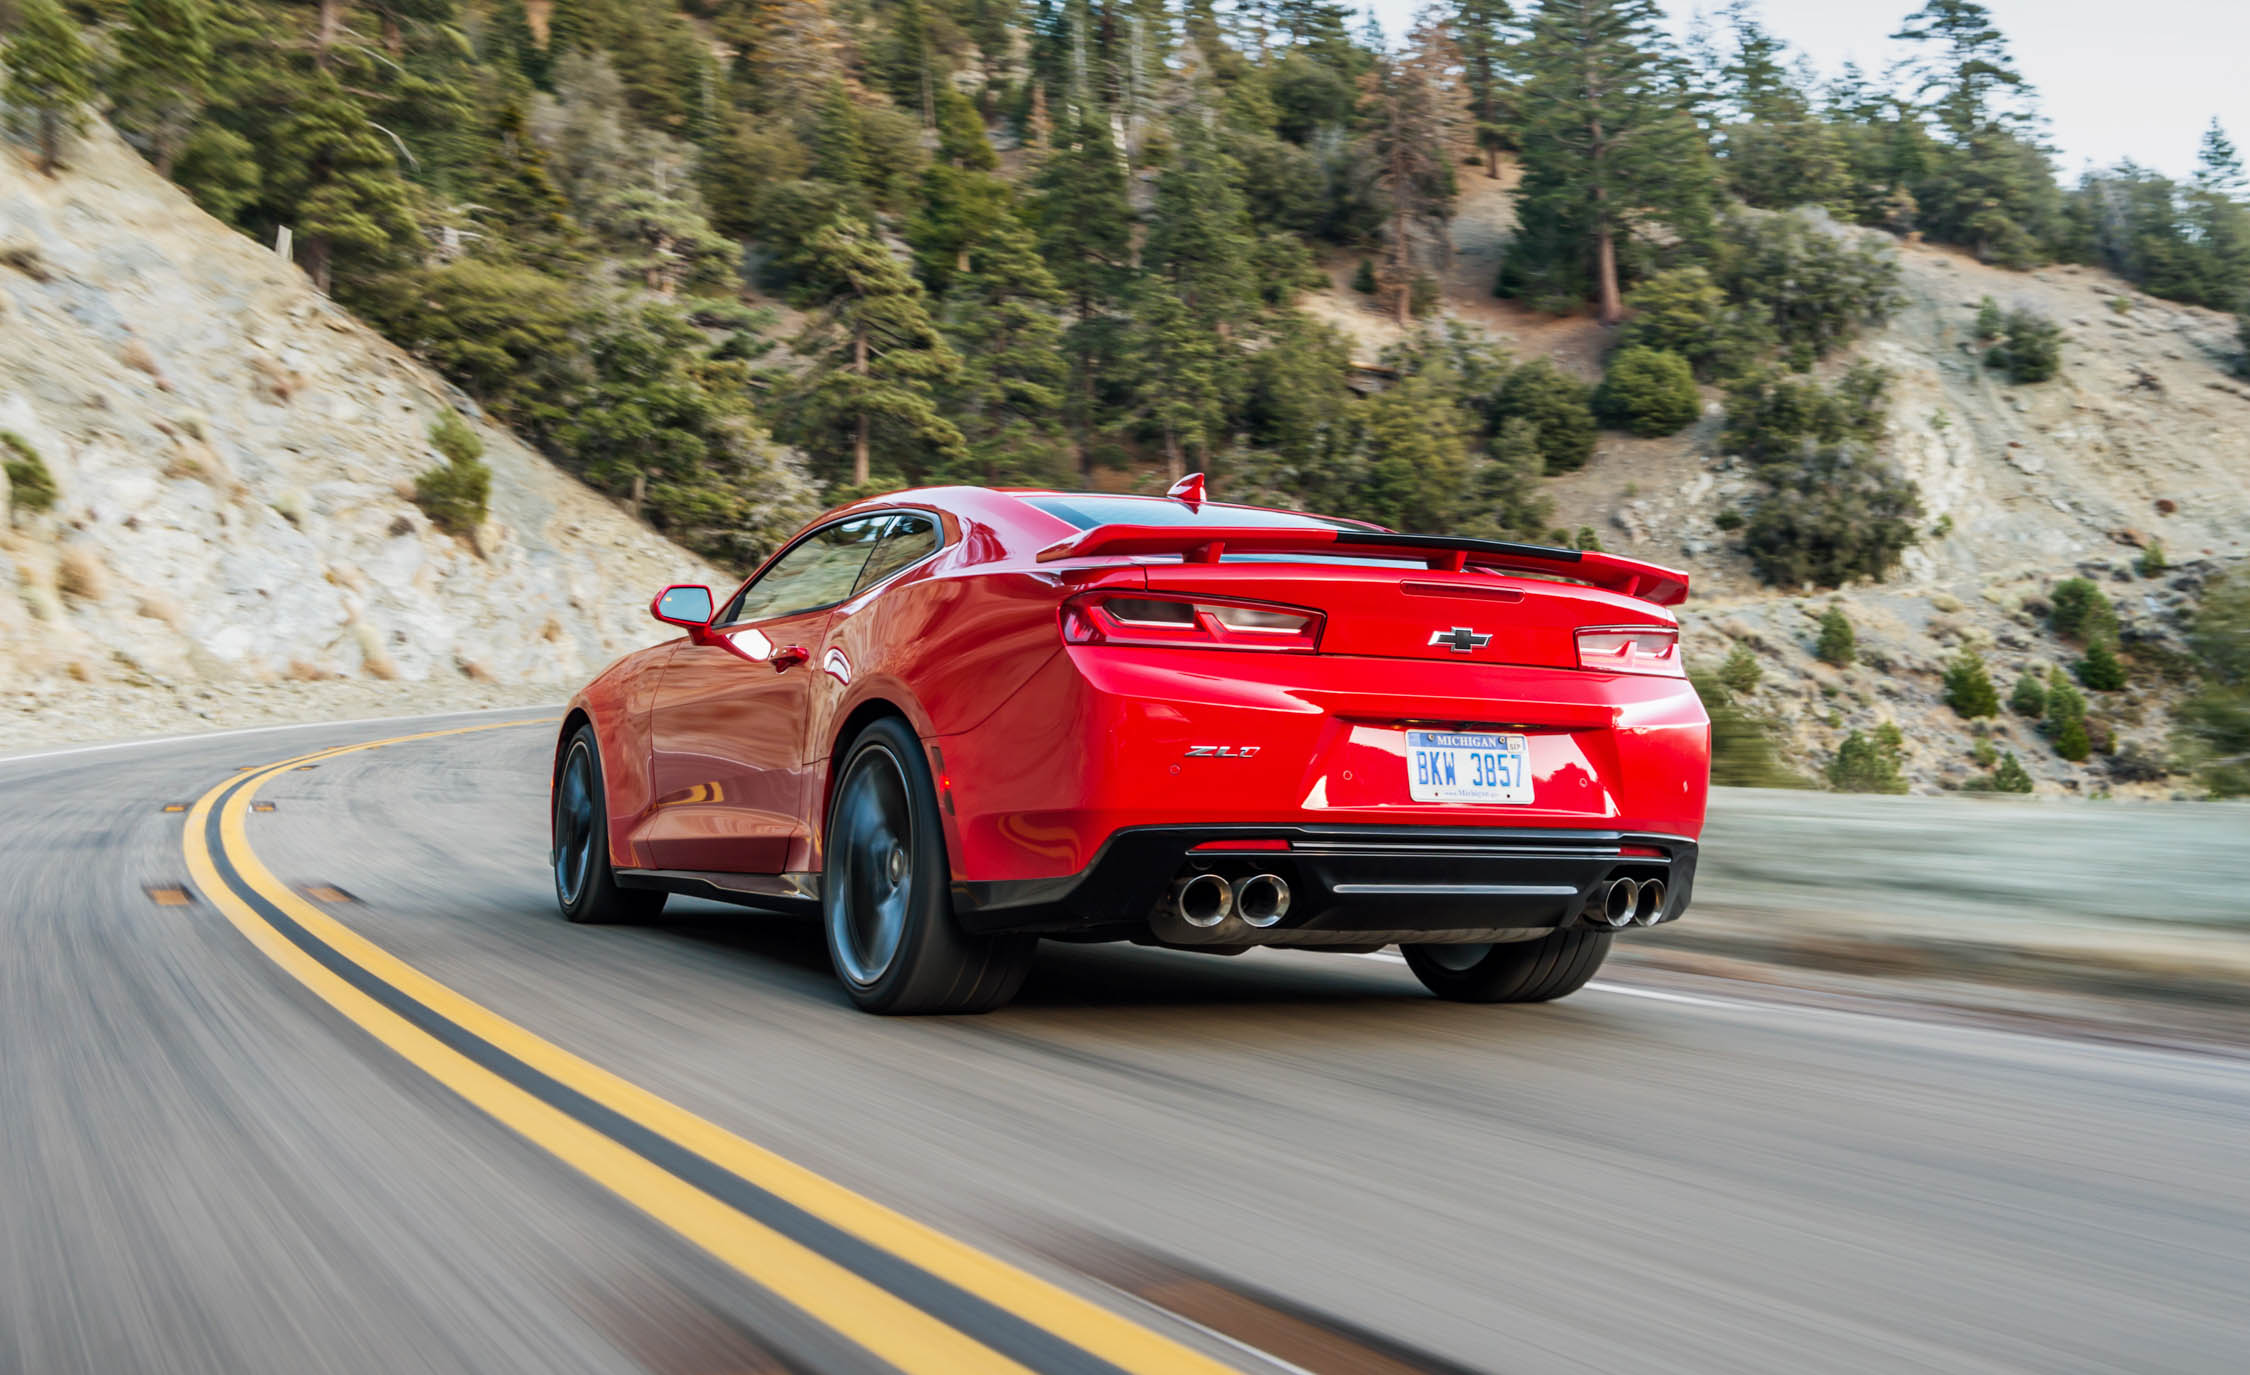 2017 Chevrolet Camaro ZL1 Red Test Drive Rear And Side (Photo 40 of 62)